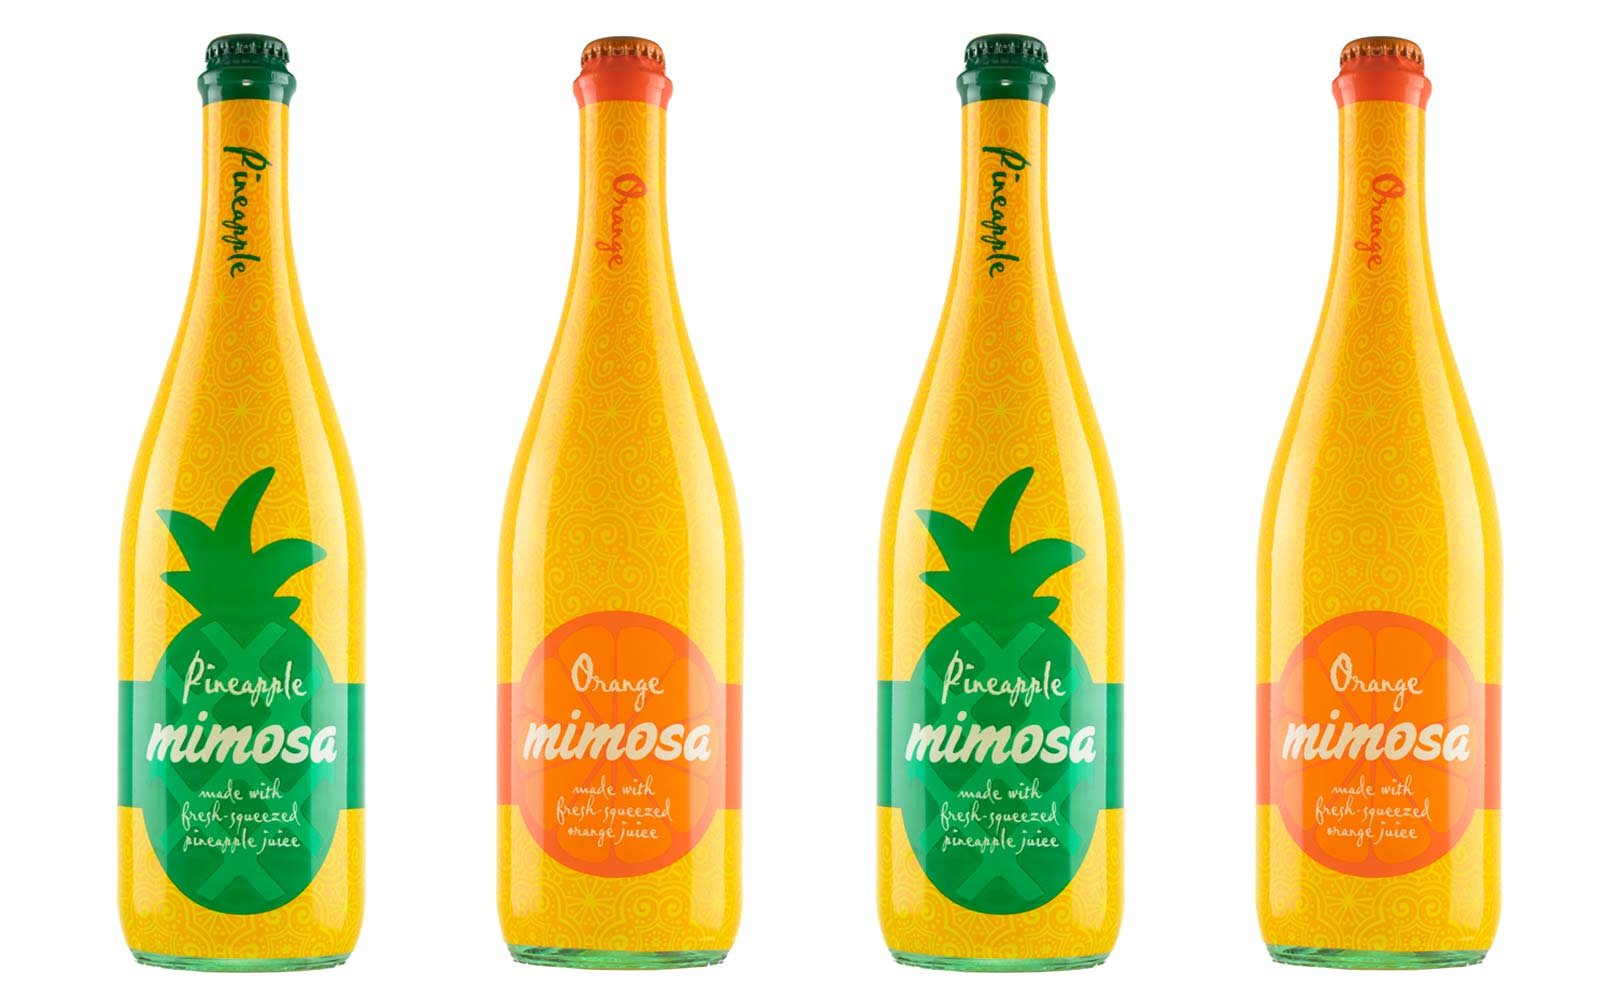 Pineapple and Orange Mimosas at ALDI